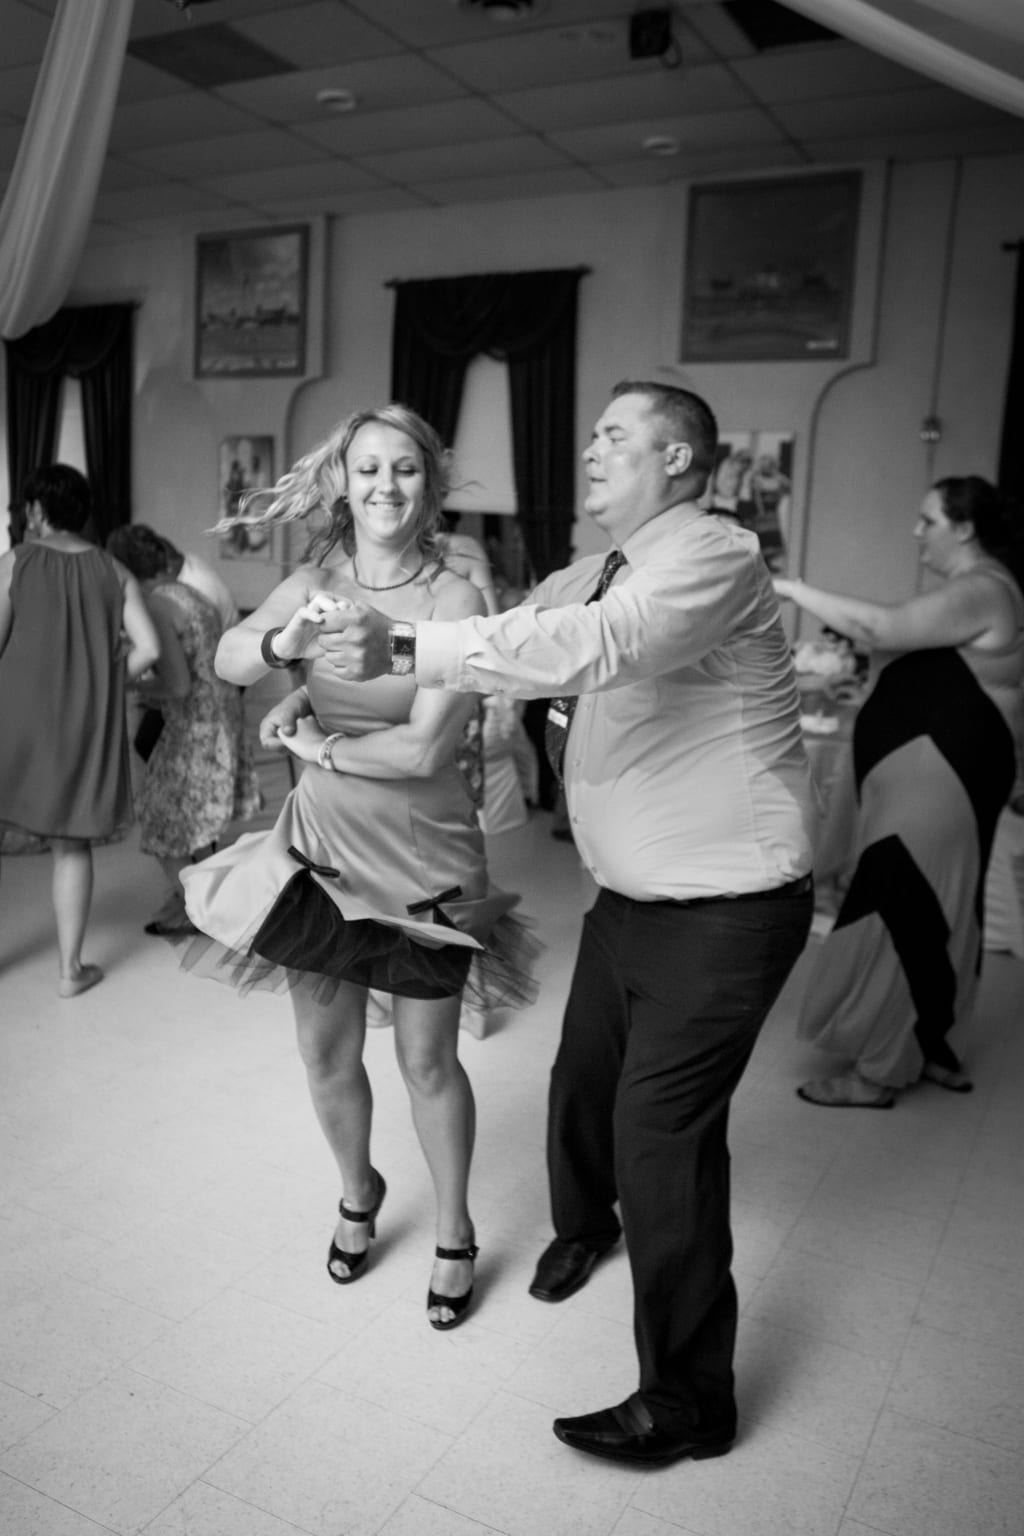 Reception-Dancing-Couple-Wedding-Zsuzsi-Pal-Photography